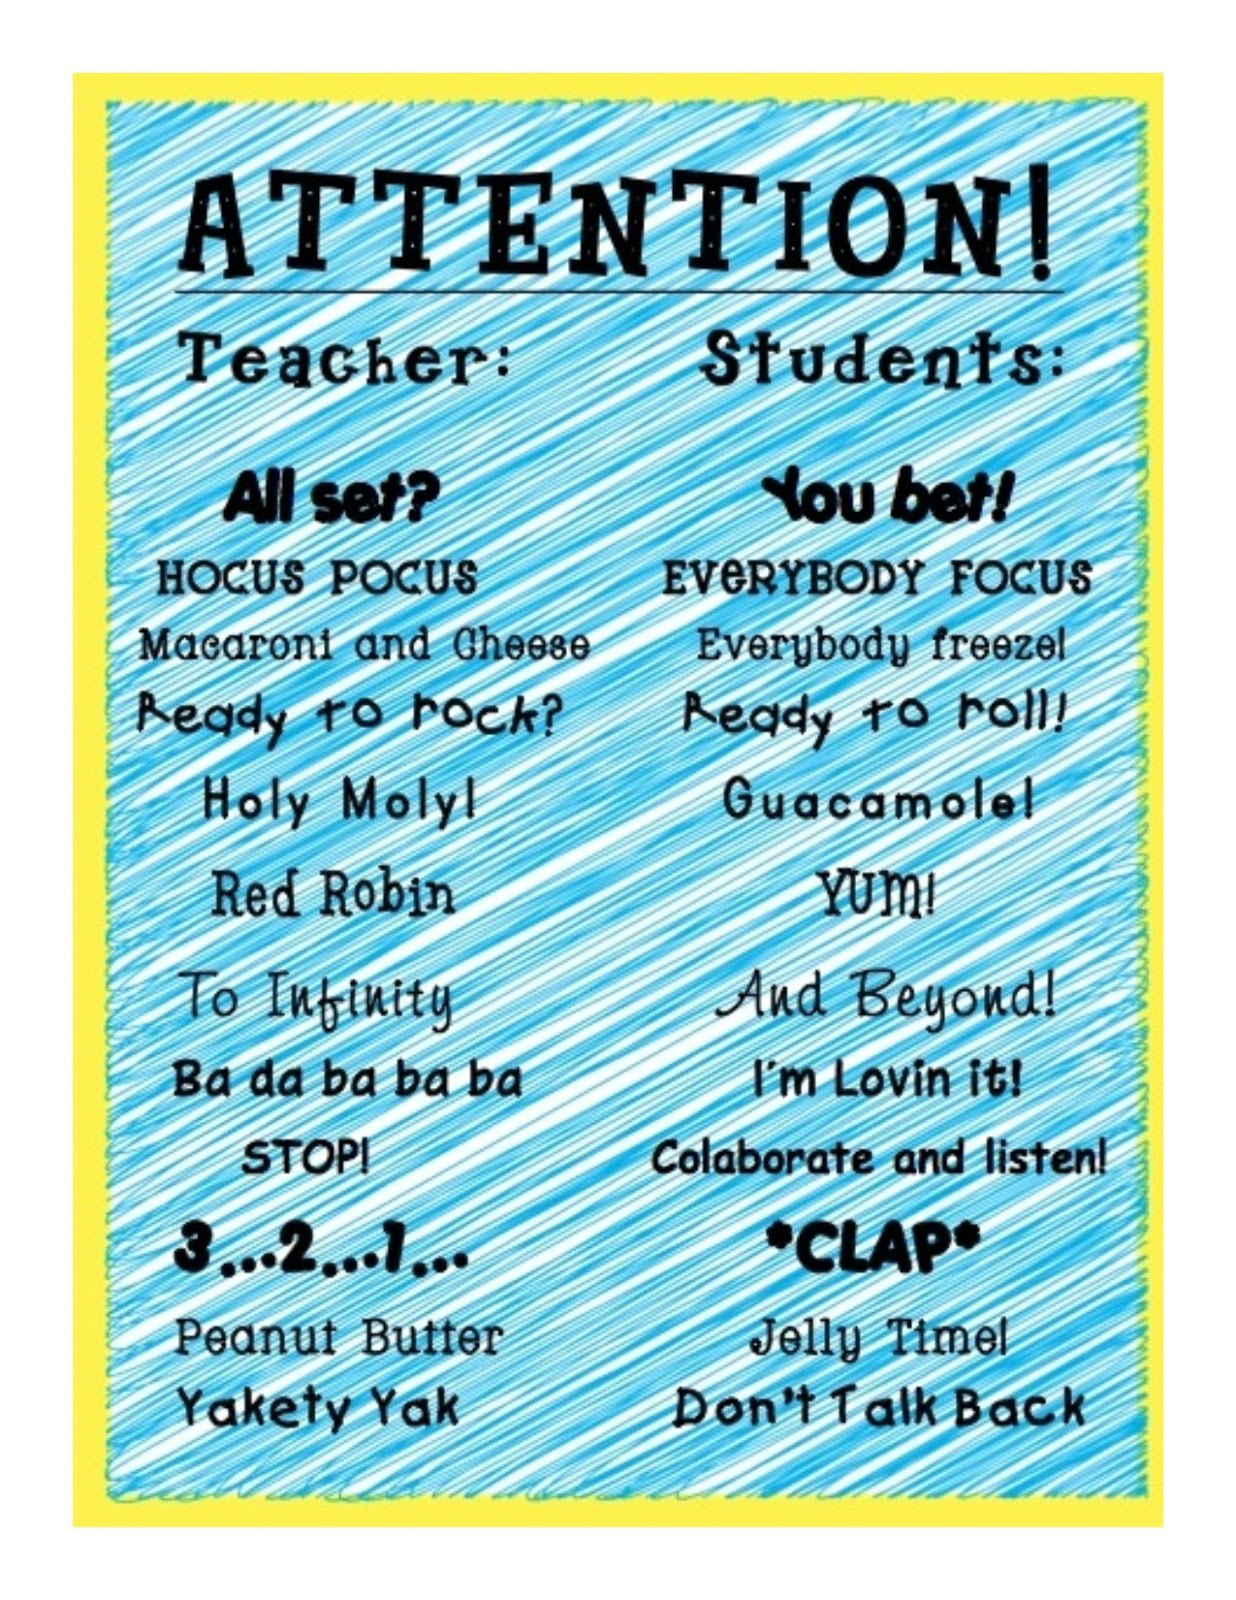 Second Grade Signpost The Return Of The Quick Tips Linky